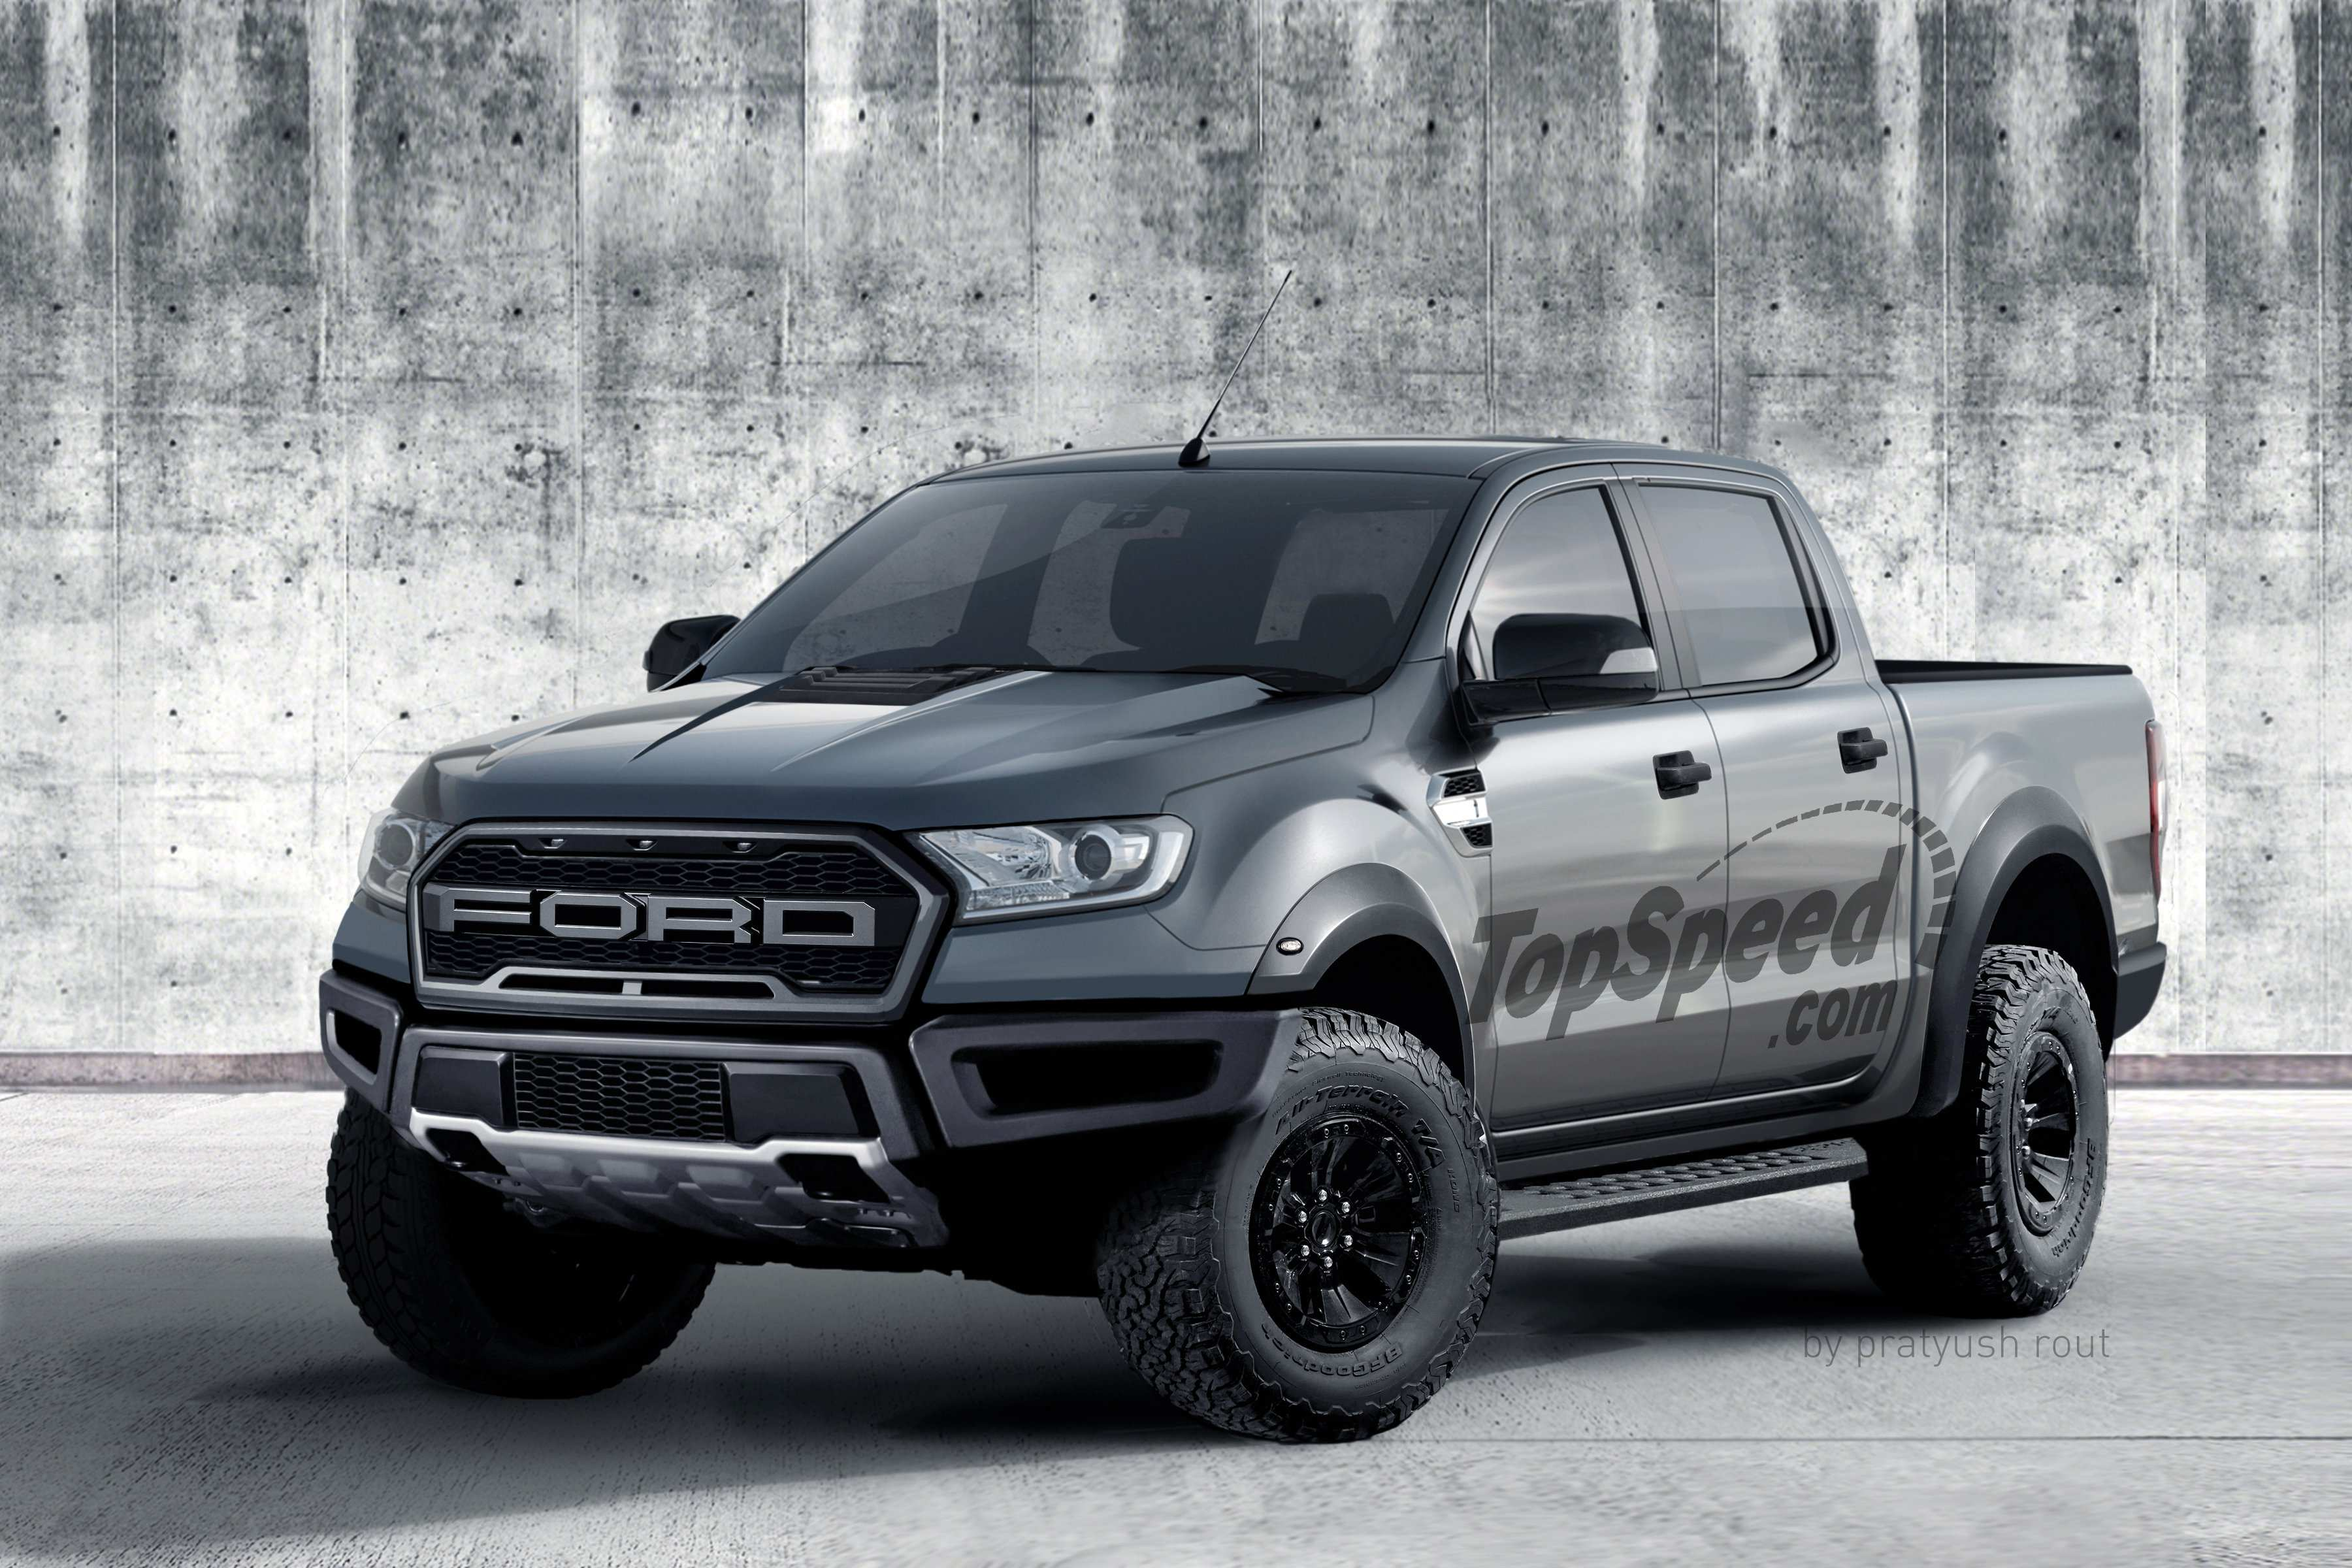 95 Gallery of Ford Ranger 2019 Specs Performance And New Engine Specs for Ford Ranger 2019 Specs Performance And New Engine